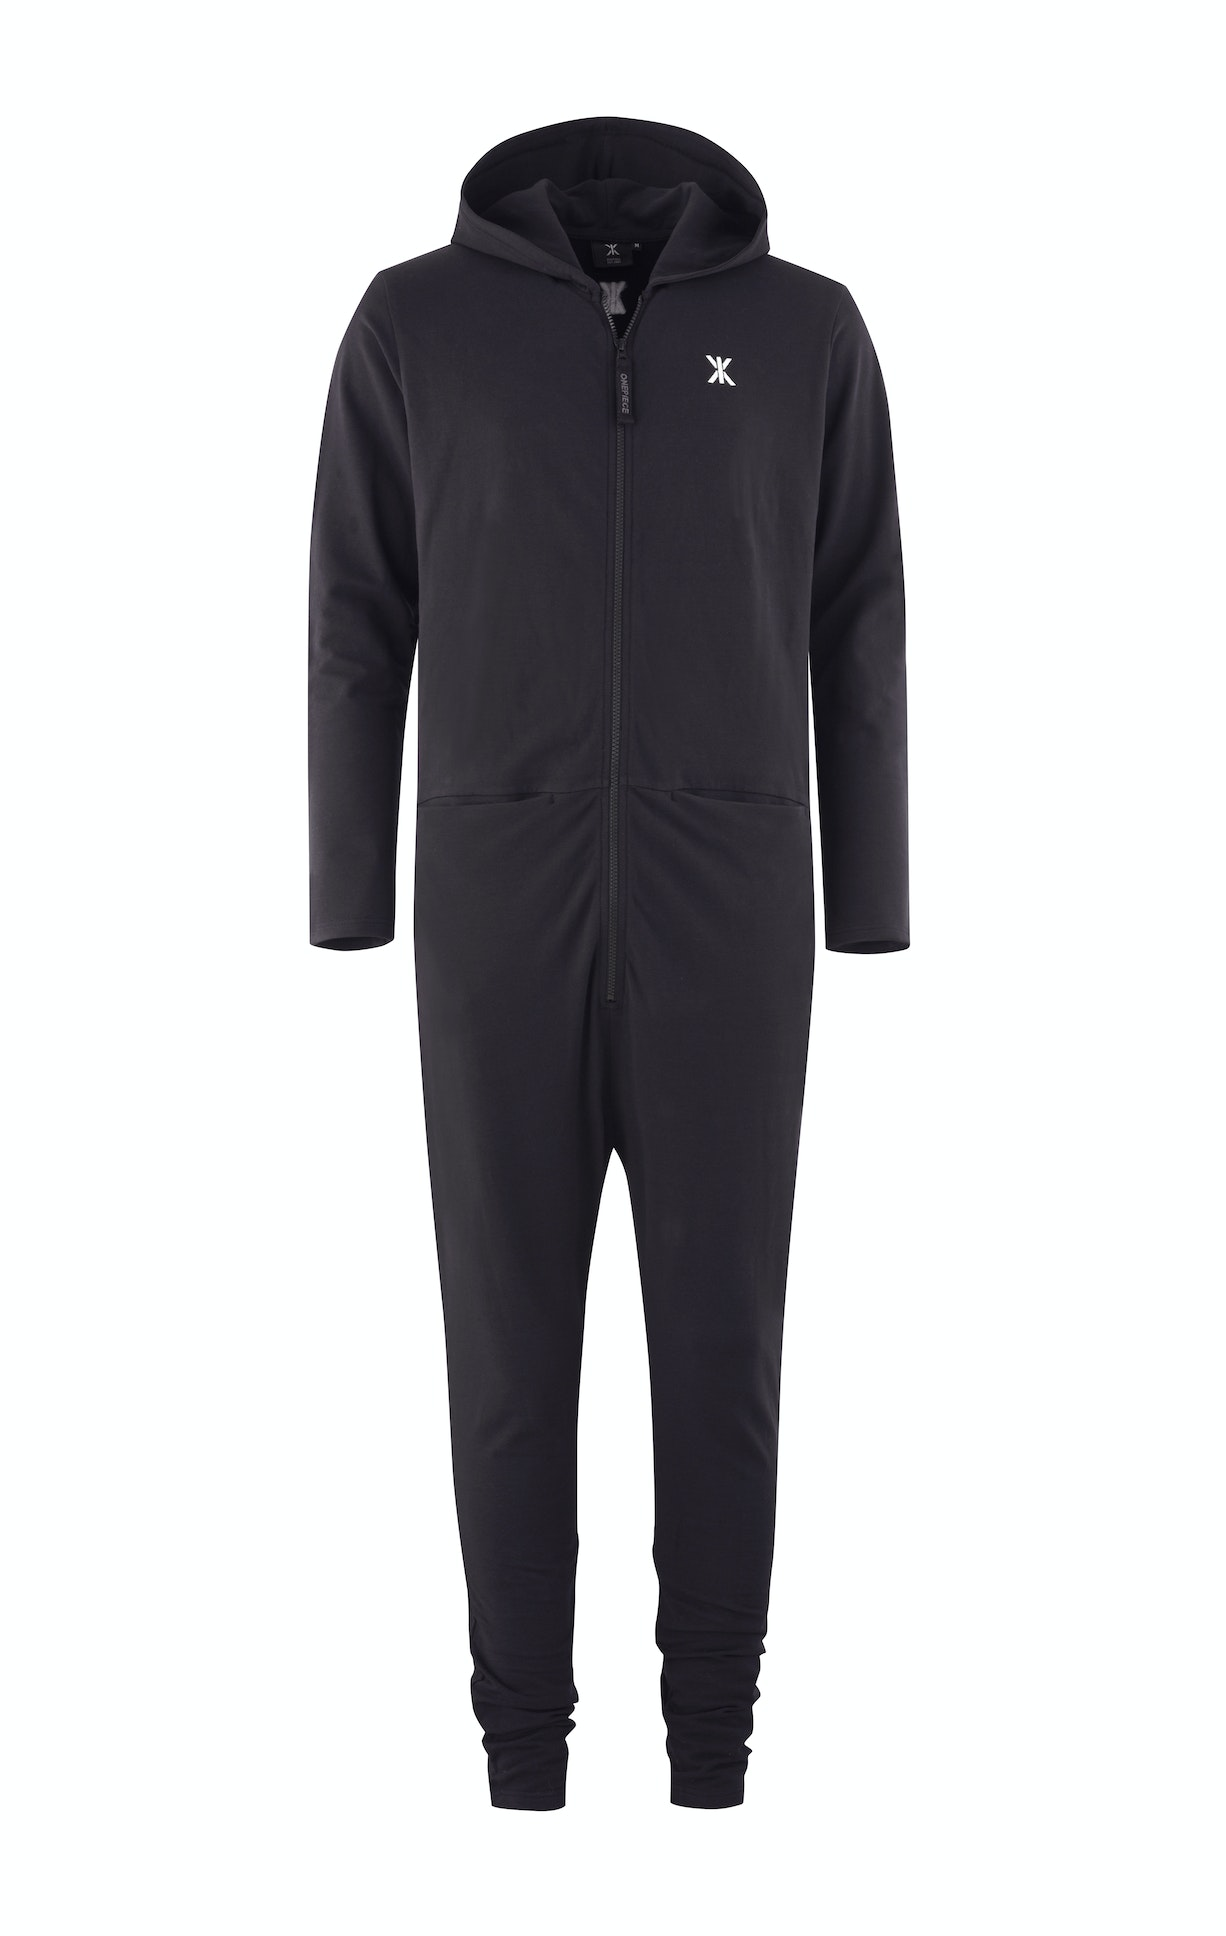 Uno Jumpsuit Black An updated version of the Classic Mono, the Uno jumpsuit is the ultimate loungewear. The piece features two hidden pockets on the waist, and a classic zipper.